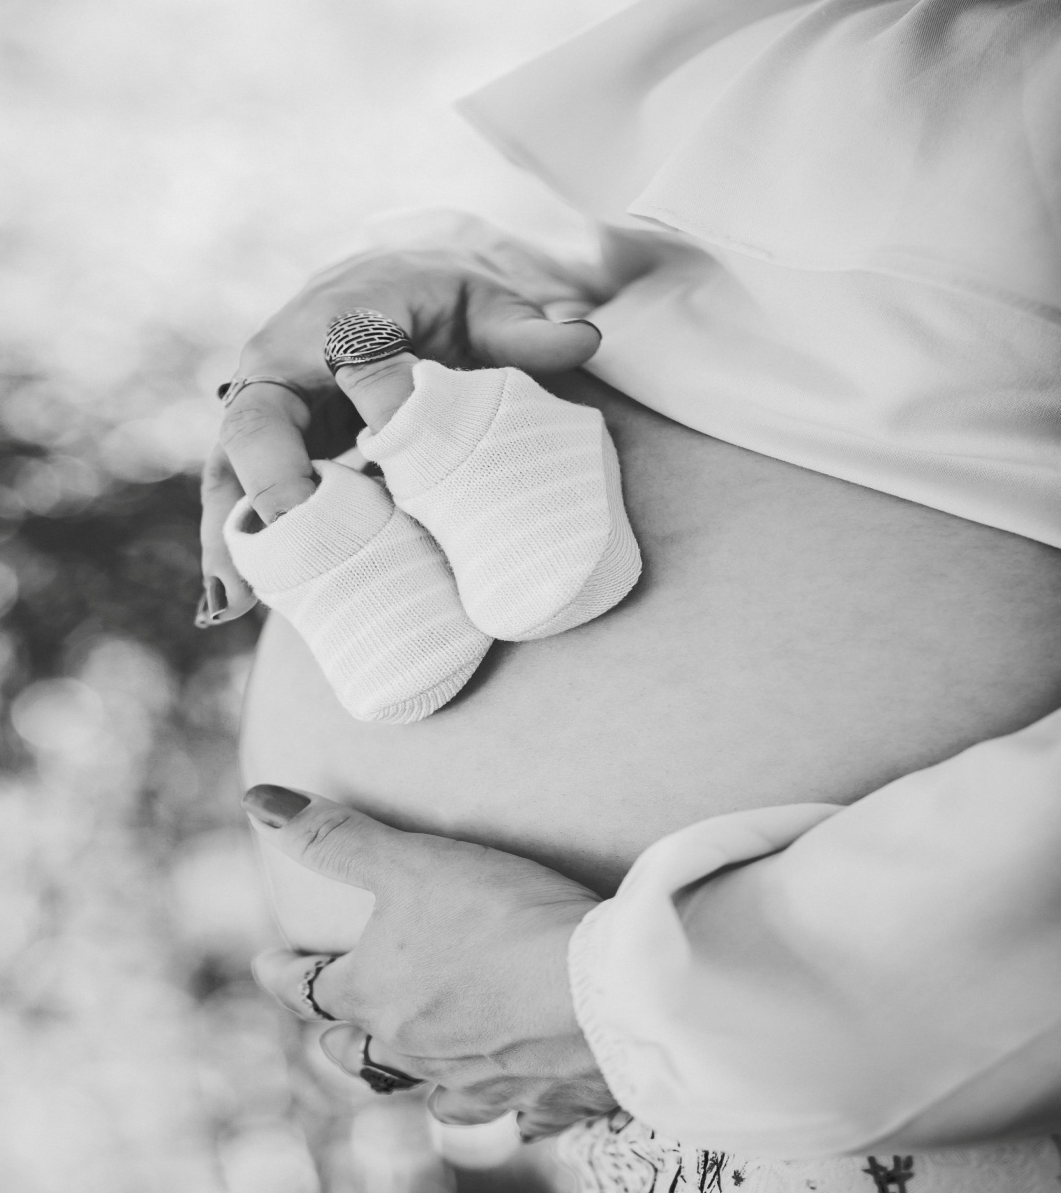 Grayscale photo of a pregnant belly